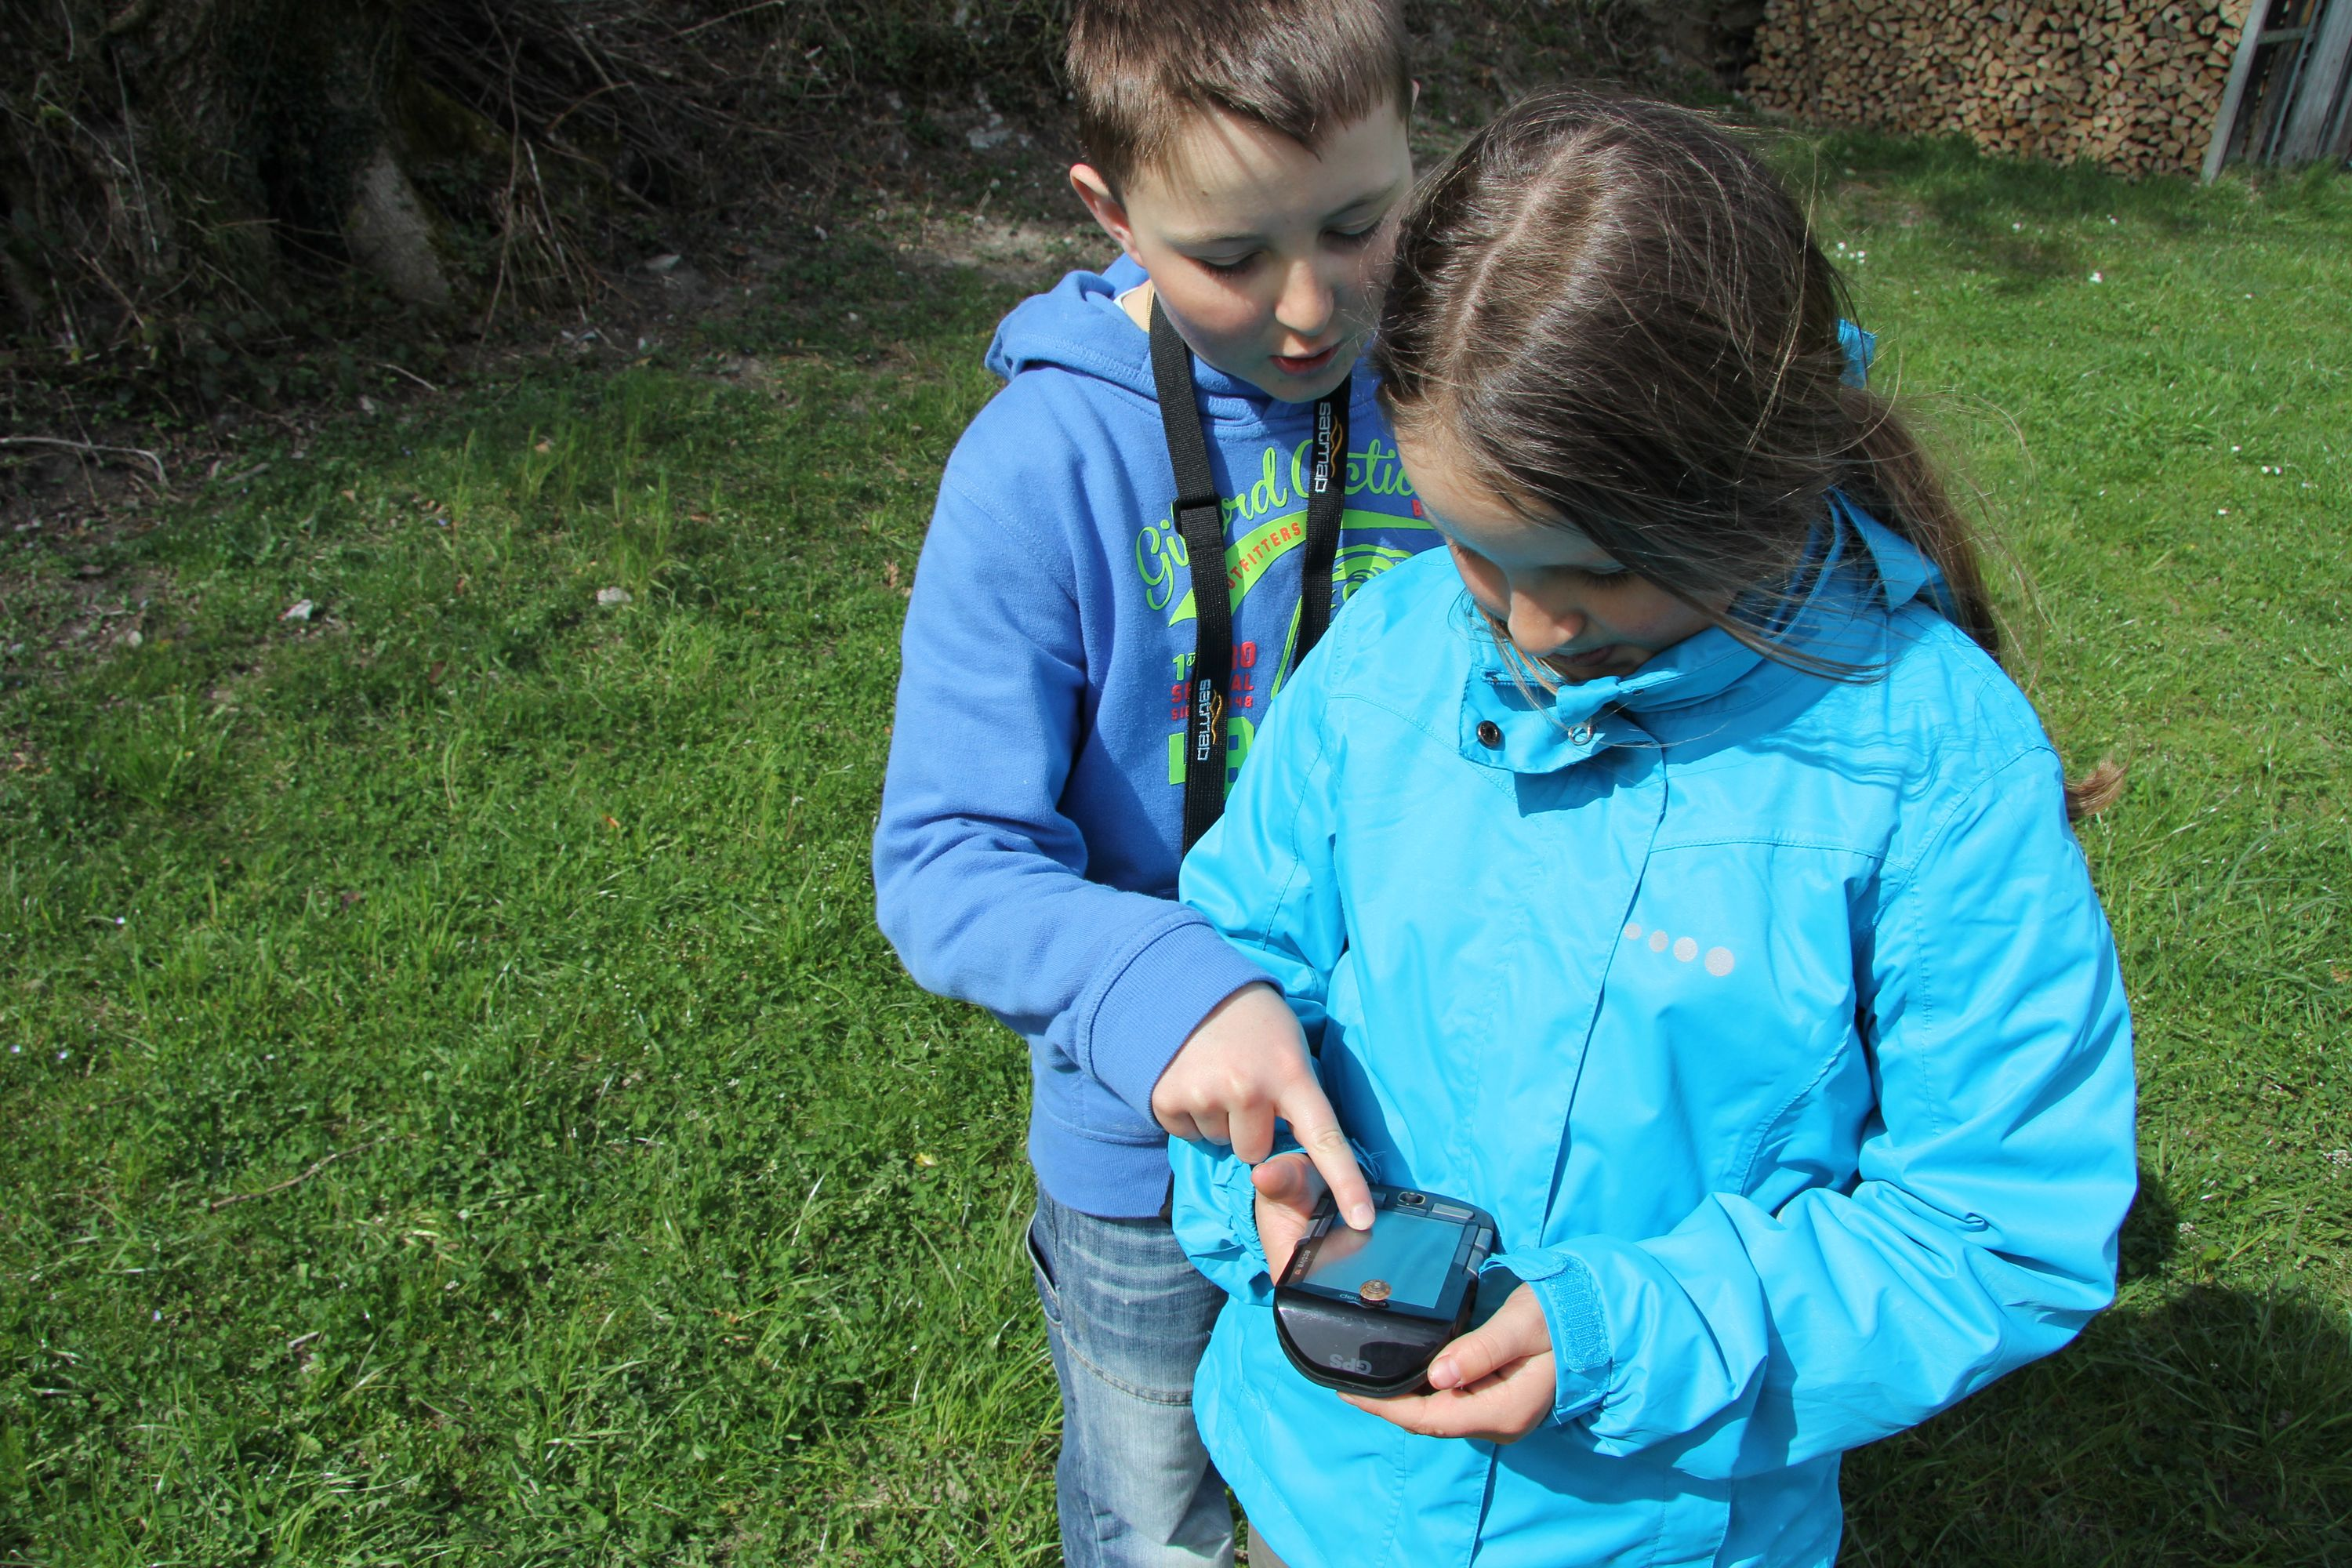 Angebot-Geo Caching-Sommer-Familien